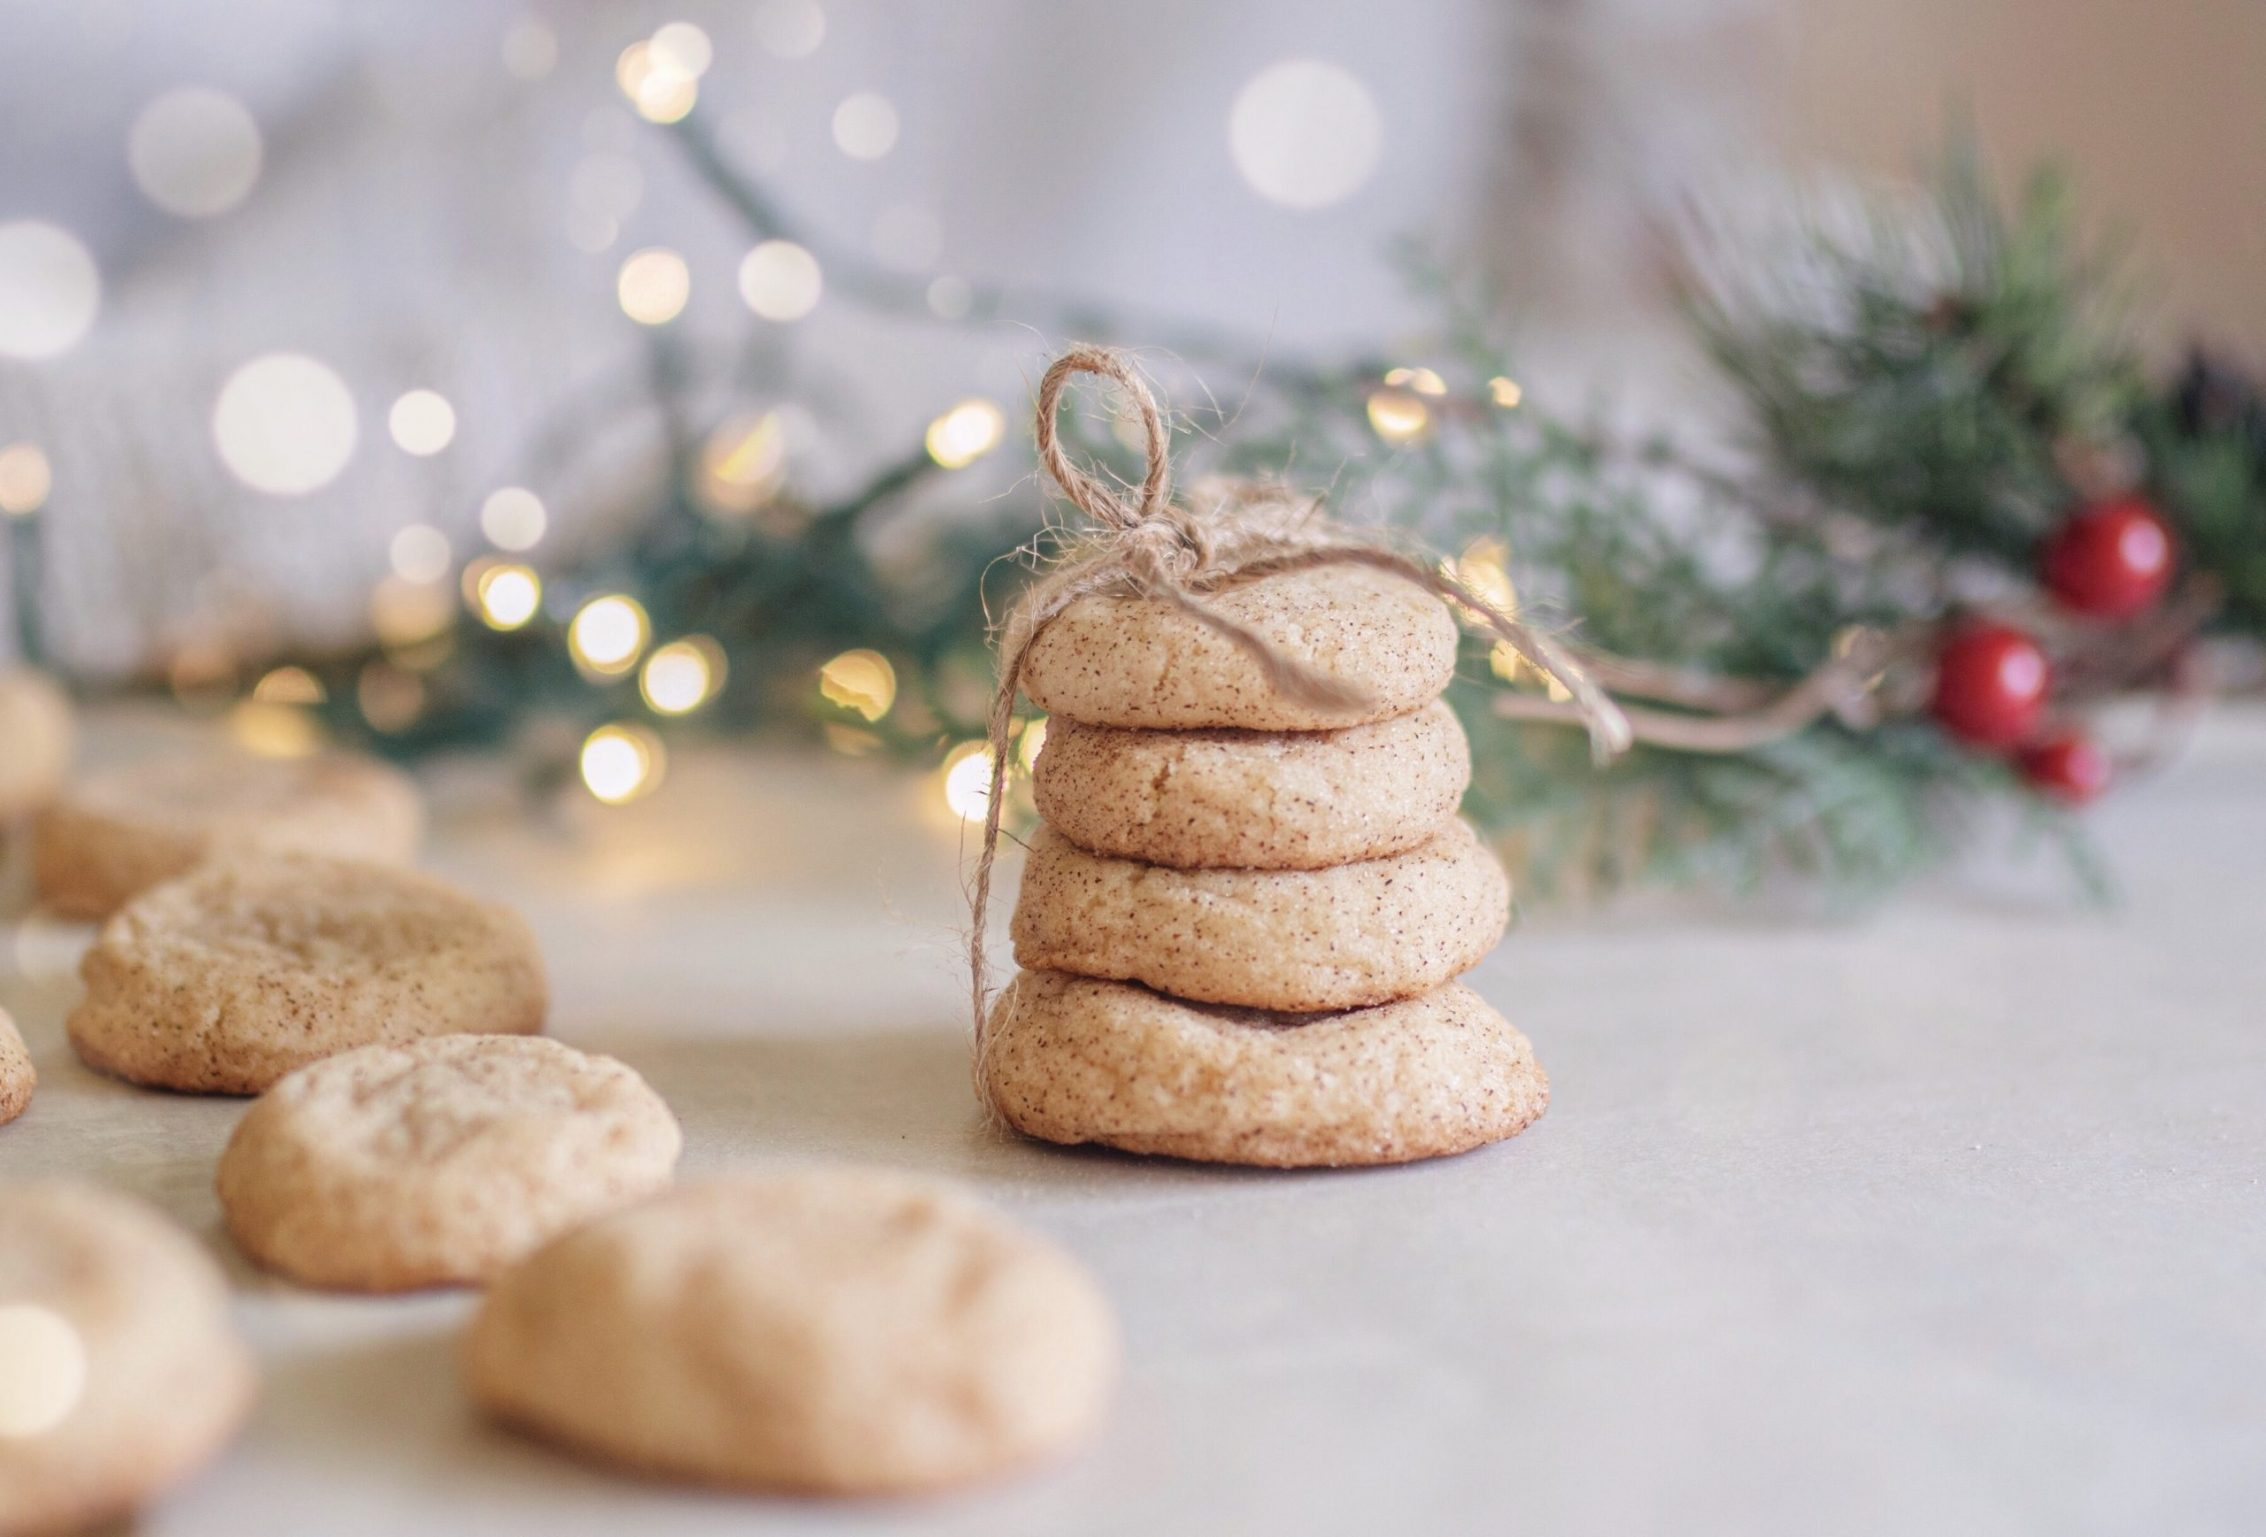 easy snickerdoodle cookie recipe the best snickerdoodle cookie recipe mommy blogger food cookies cookie recipe holiday baking recipes worldschooling traveling family